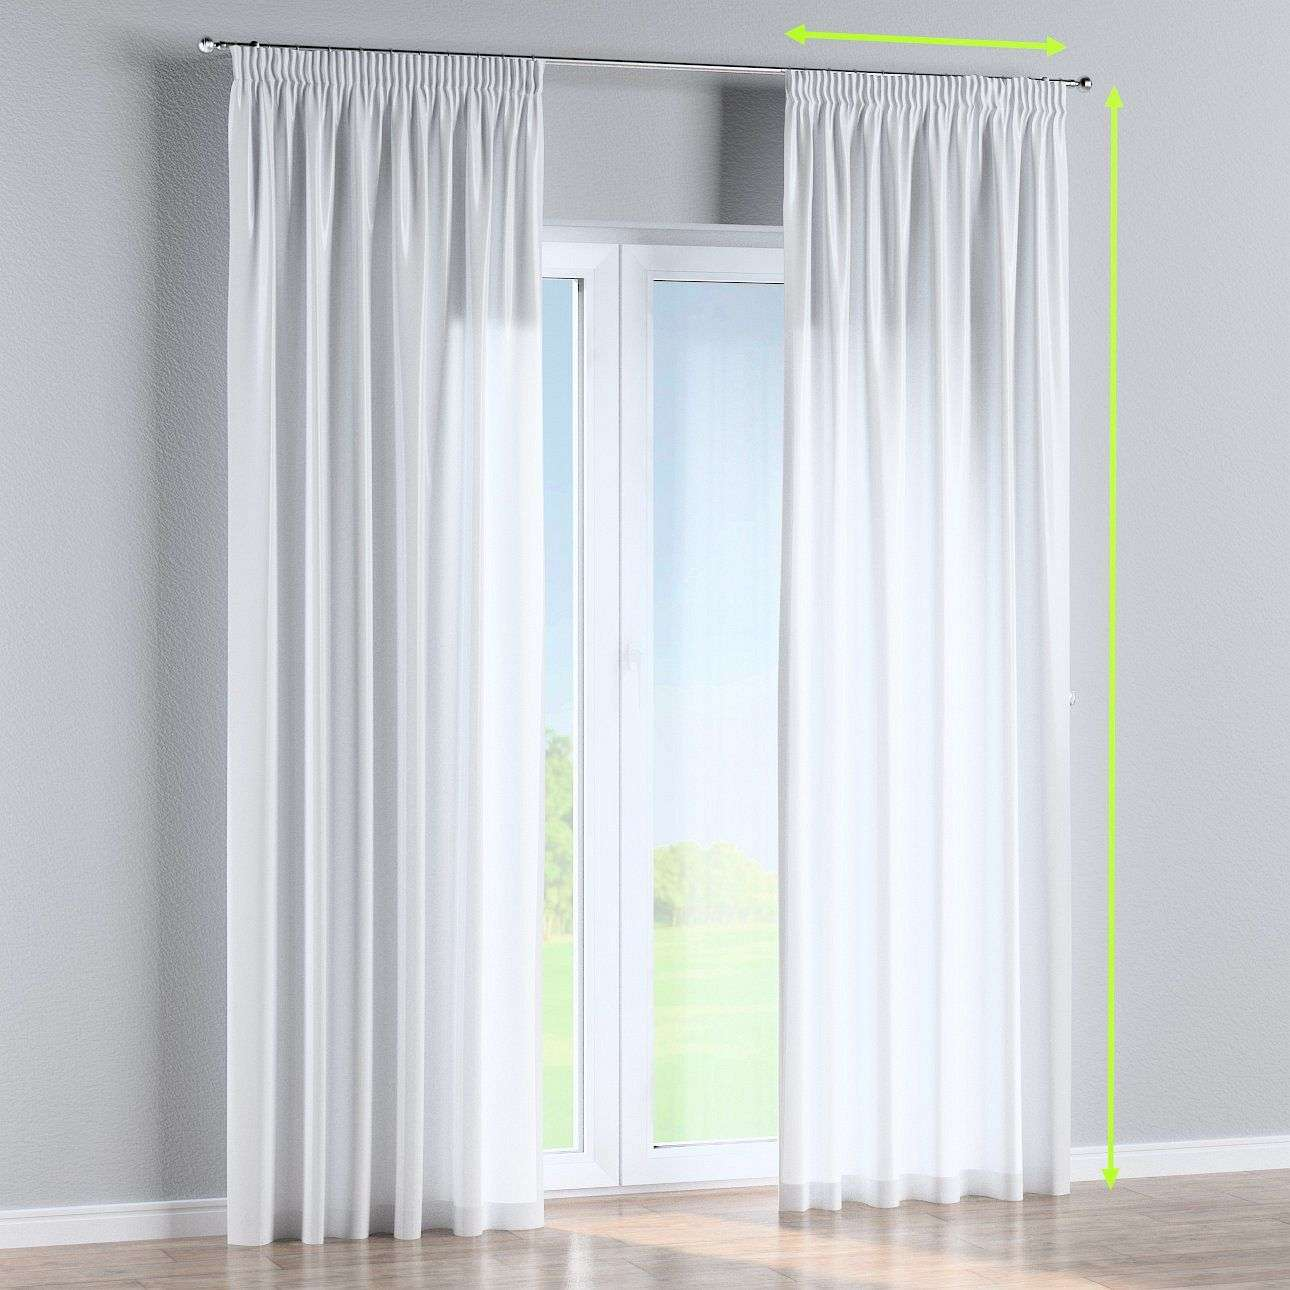 Pencil pleat lined curtains in collection Damasco, fabric: 141-78